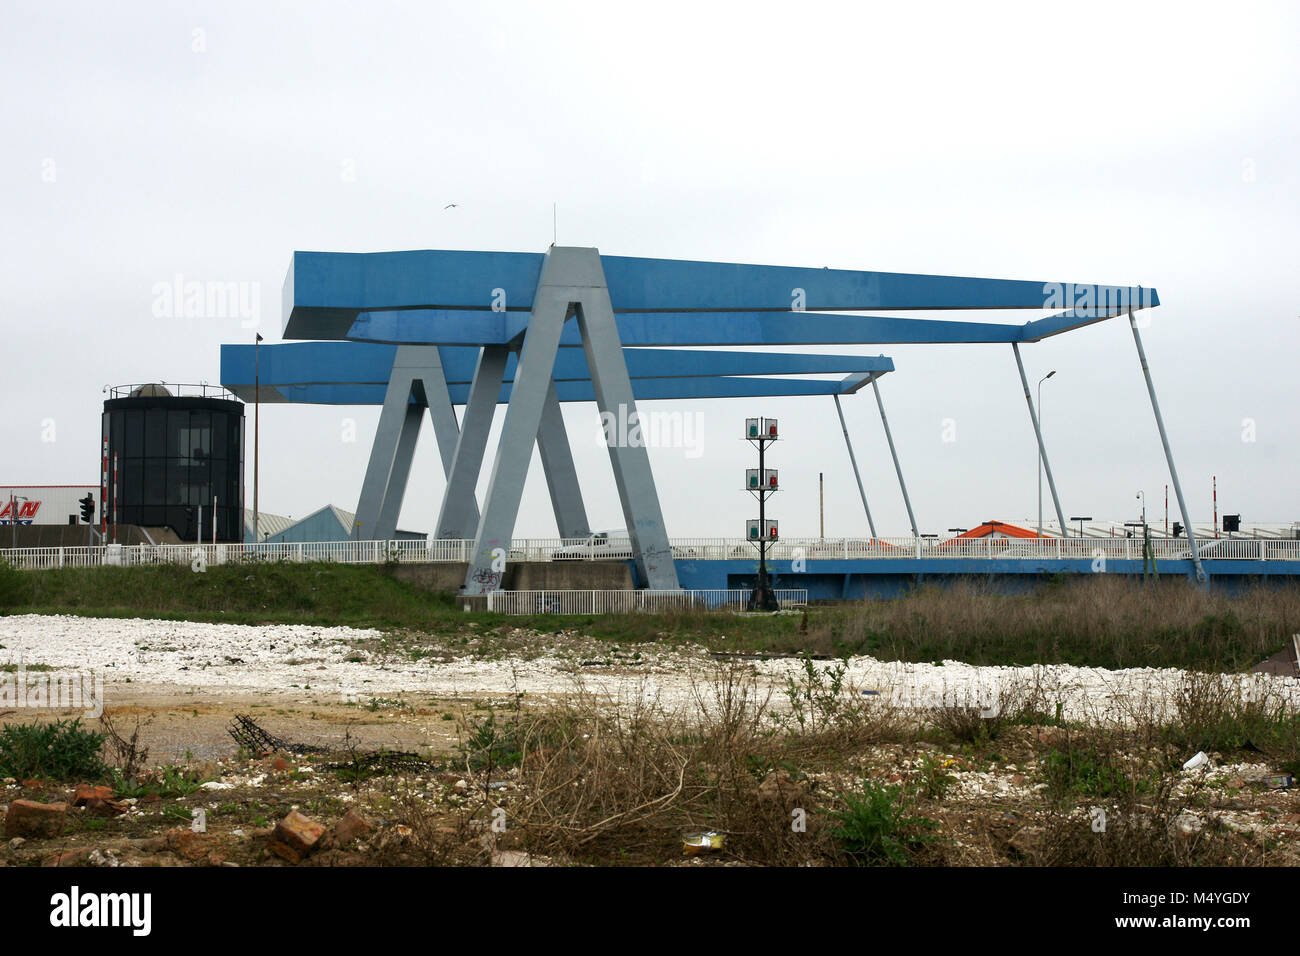 Clough road,Ferry Lane, Stoneferry Bridges, and control tower, twin lift road bridges over the river Hull, kingston - Stock Image